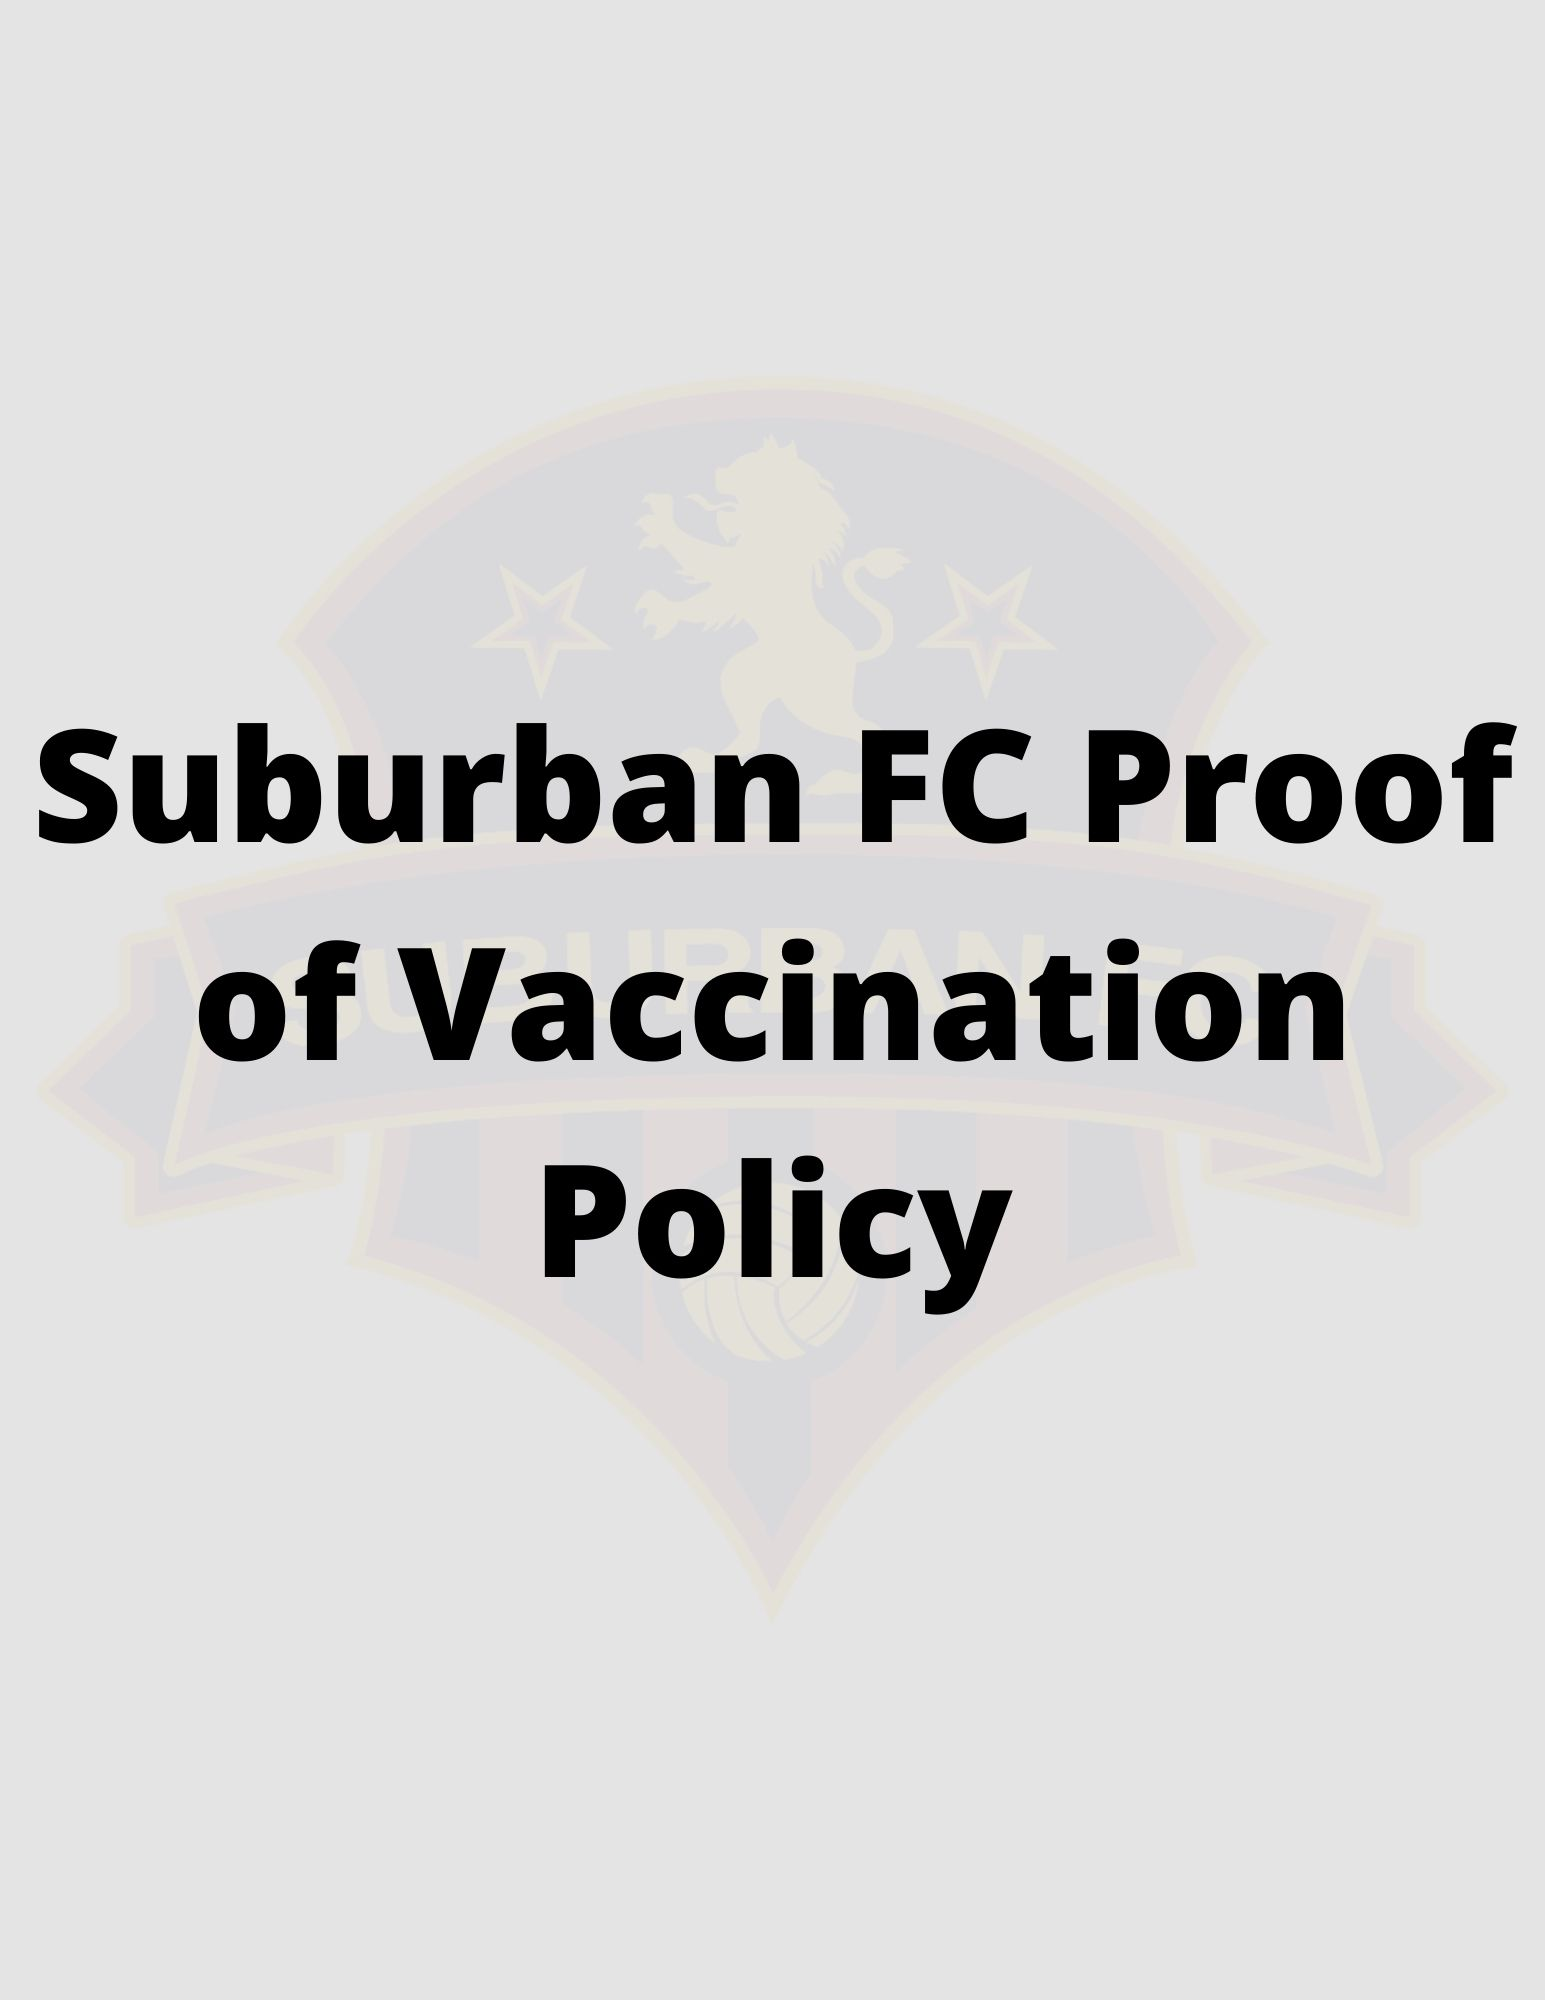 SFC Proof of Vaccination Policy